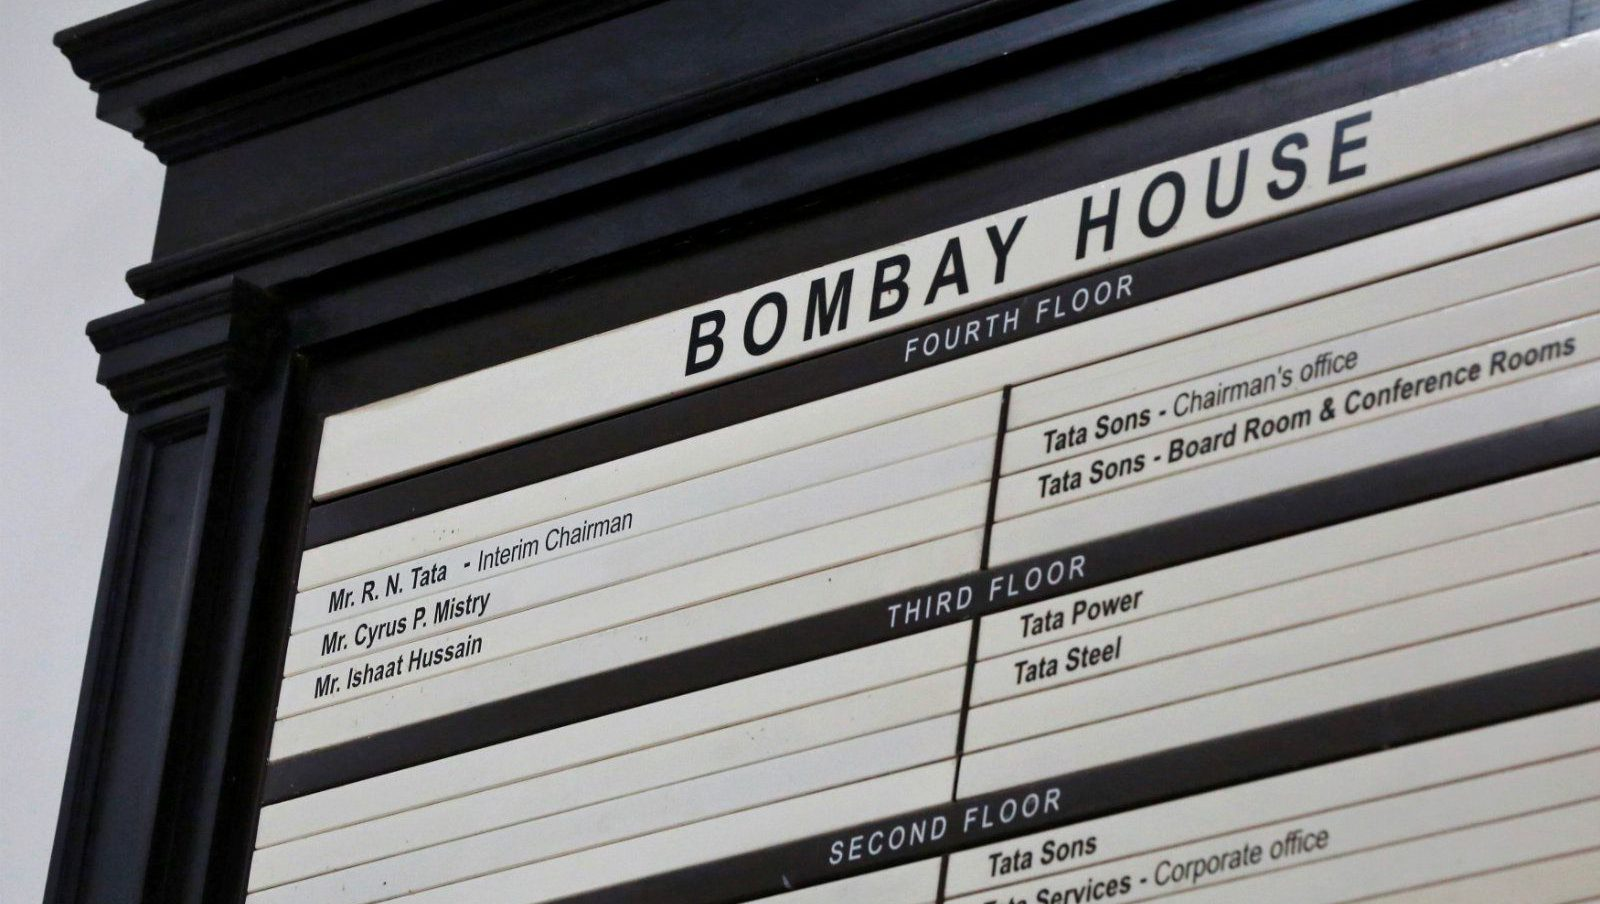 A Name Board Is Pictured At The Entrance Of Bombay House, Headquarters Of  Tata Group